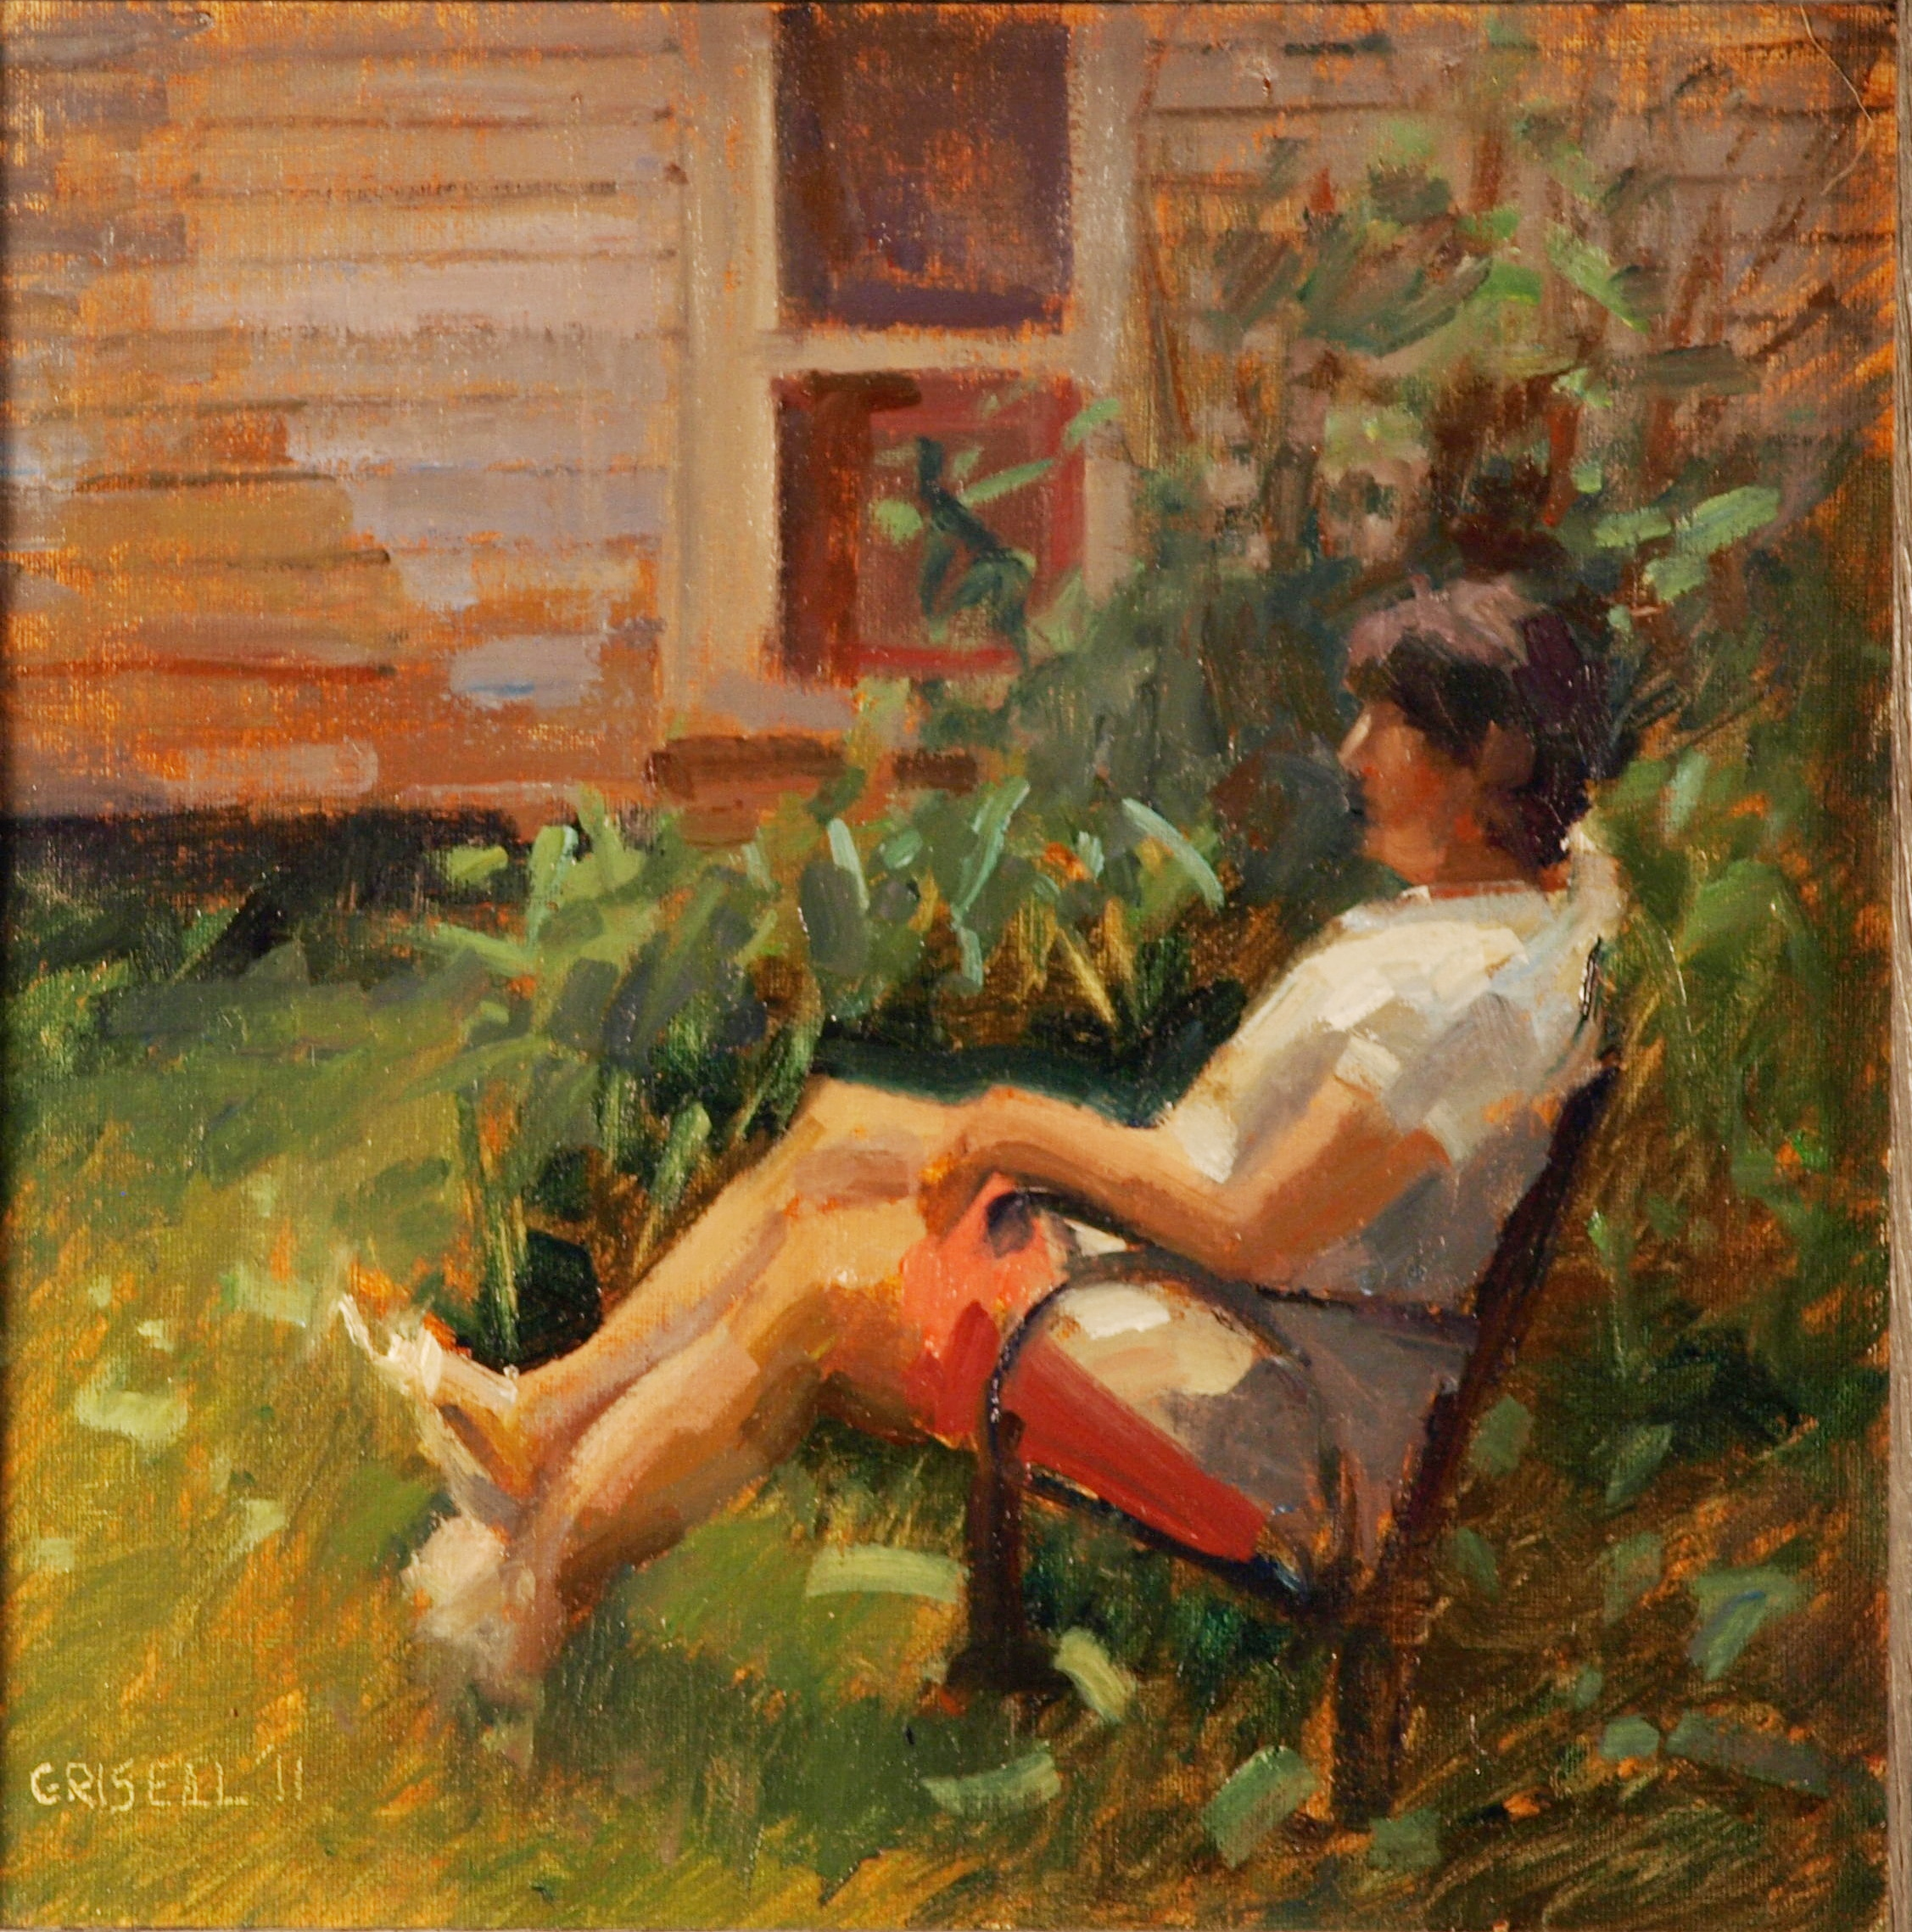 Keri in the Dooryard, Oil on Canvas on Panel, 12 x 12 Inches, by Susan Grisell, $250